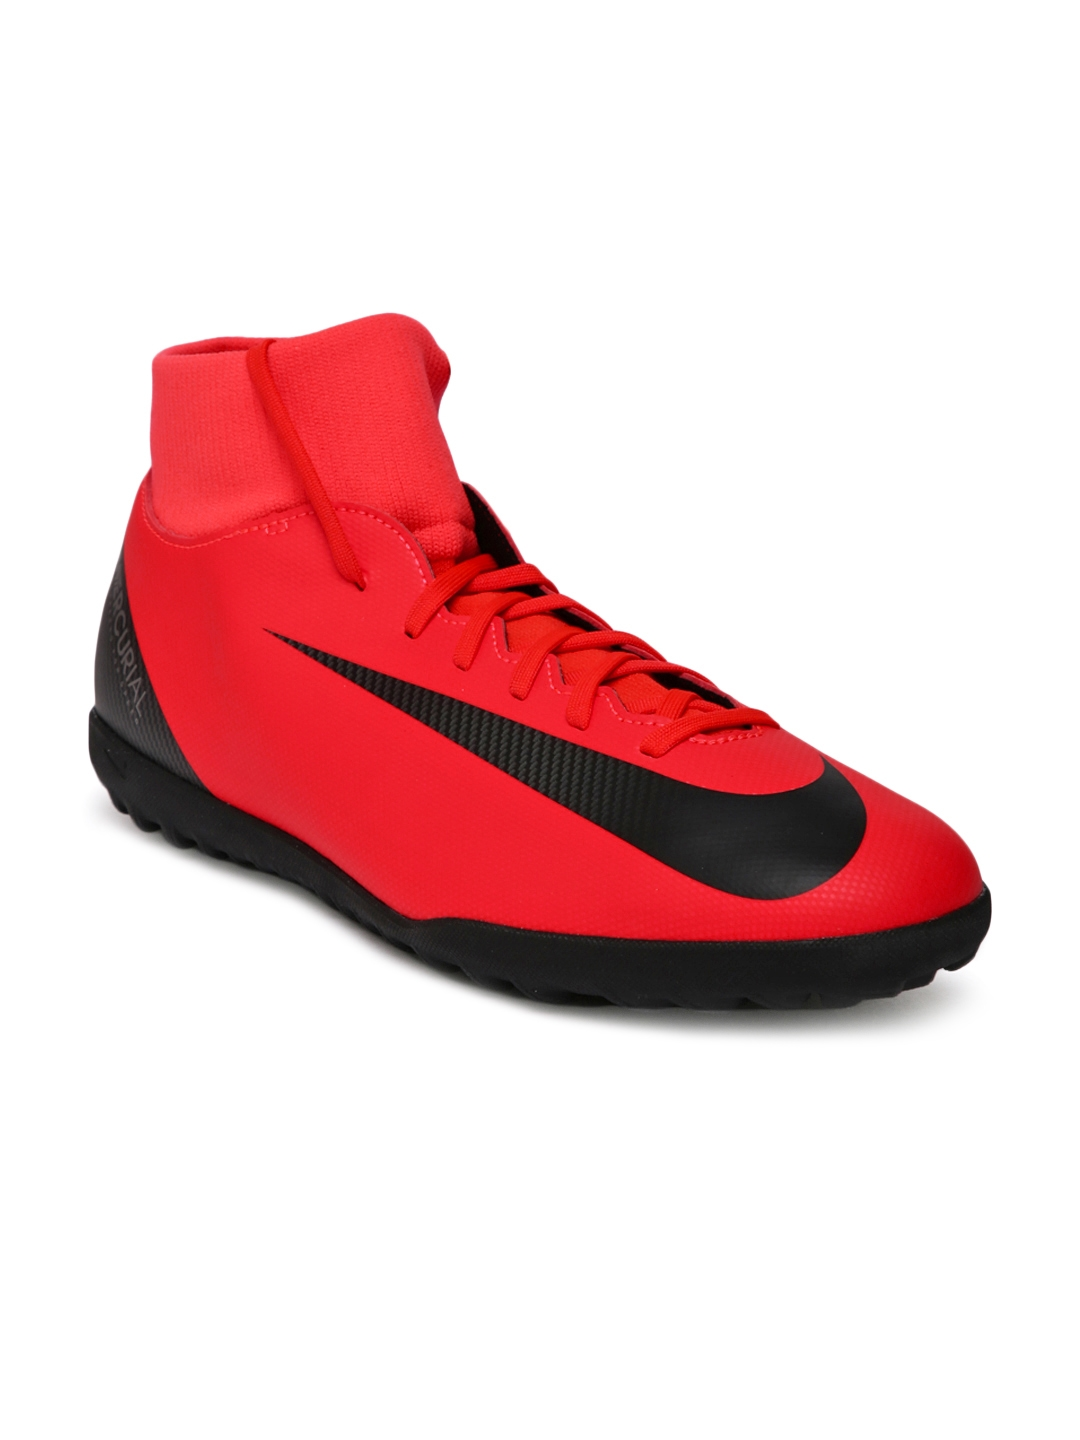 6ca53bfbb87 Buy Nike Unisex Red Mid Top SUPERFLY 6 CLUB CR7 TF Football Shoes ...